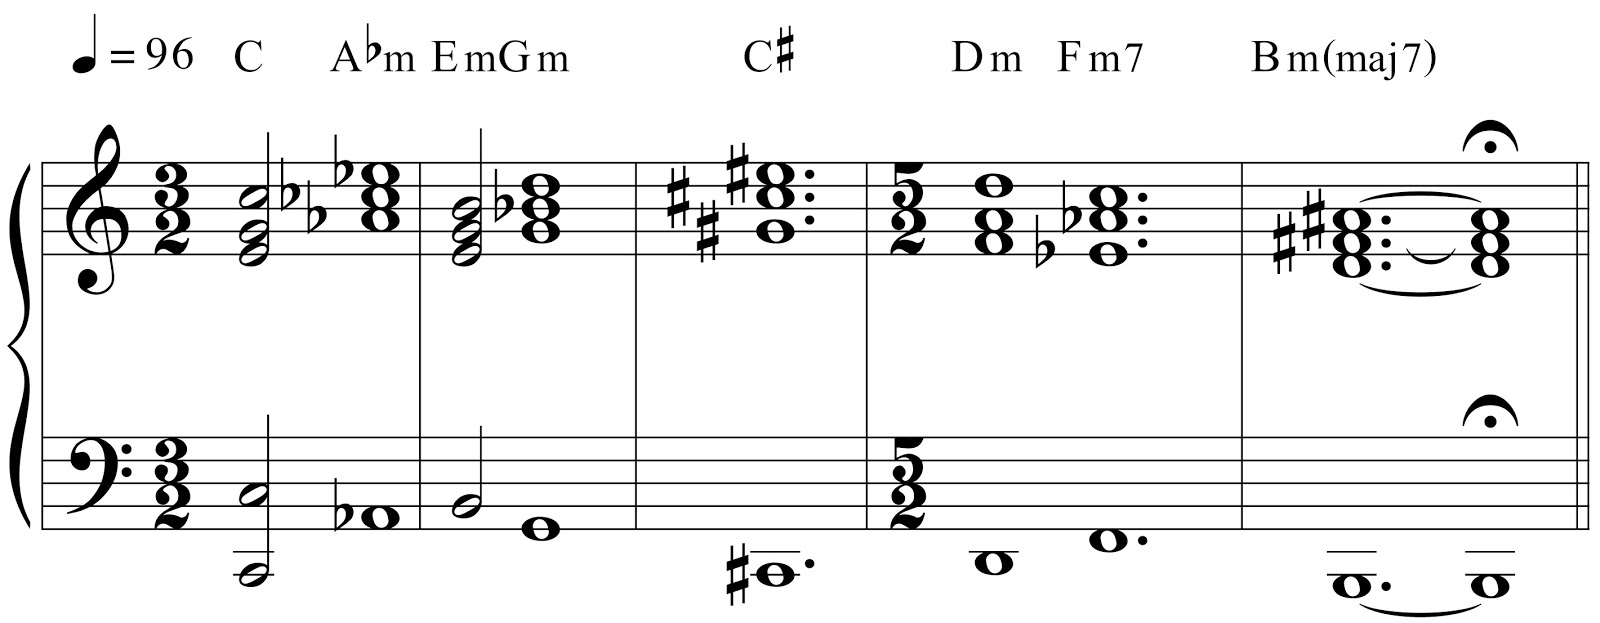 music composition weblog 2016 to my ears it succeeds in avoiding being tonal at least in any obvious way but does it succeed as a musically useful chord progression hexwebz Gallery